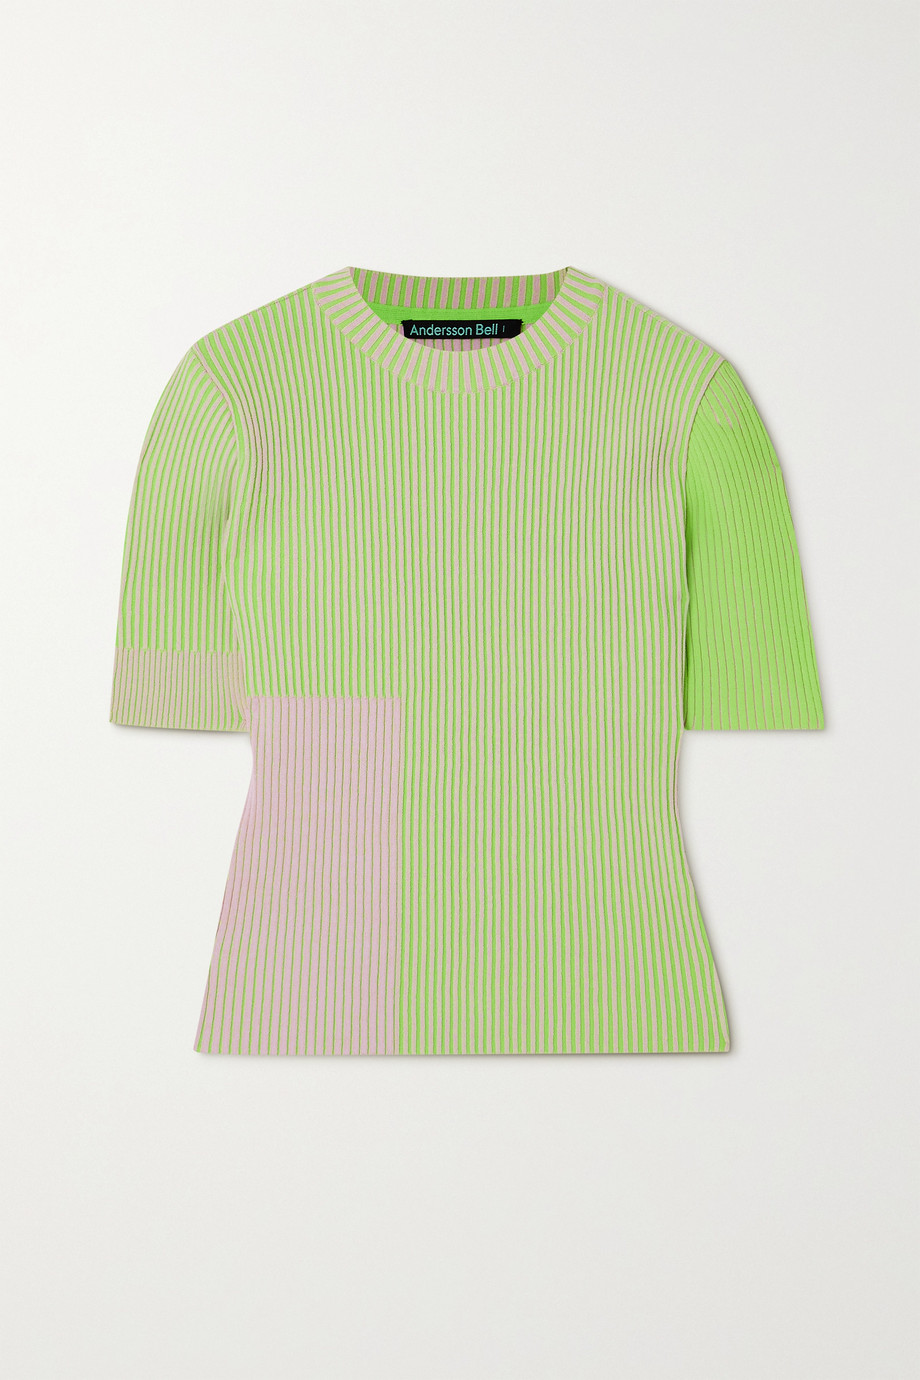 Andersson Bell Janis two-tone ribbed-knit top